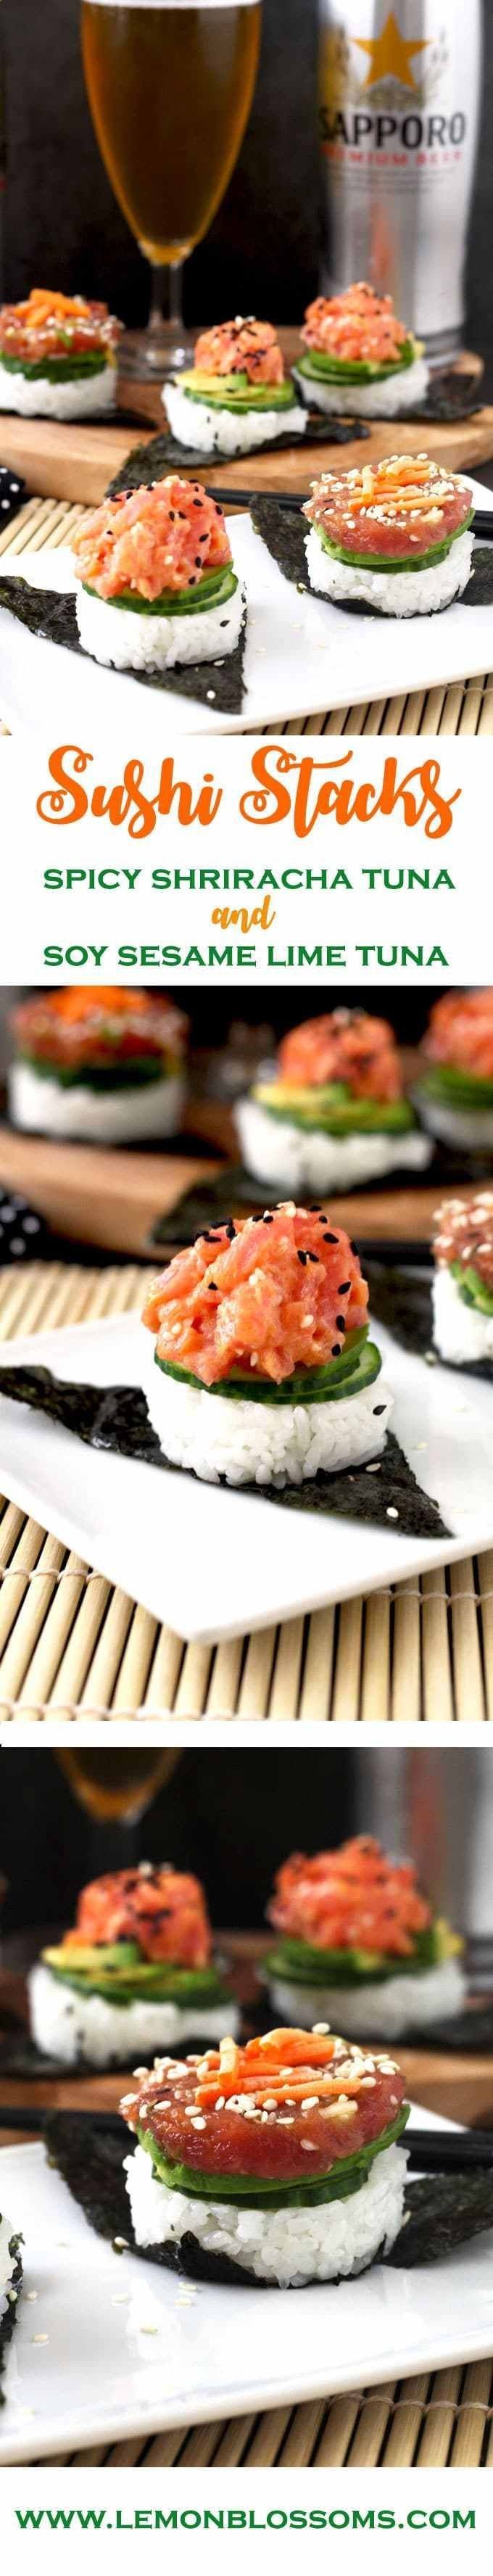 These easy to make, delicious and super flavorful sushi stacks are made with fresh tuna, sushi rice, cucumbers and avocado. Included in the recipe 2 different tuna preparations! Spicy Sriracha Tuna and Soy Sesame Lime. The perfect little bites to satisfy your sushi cravings.